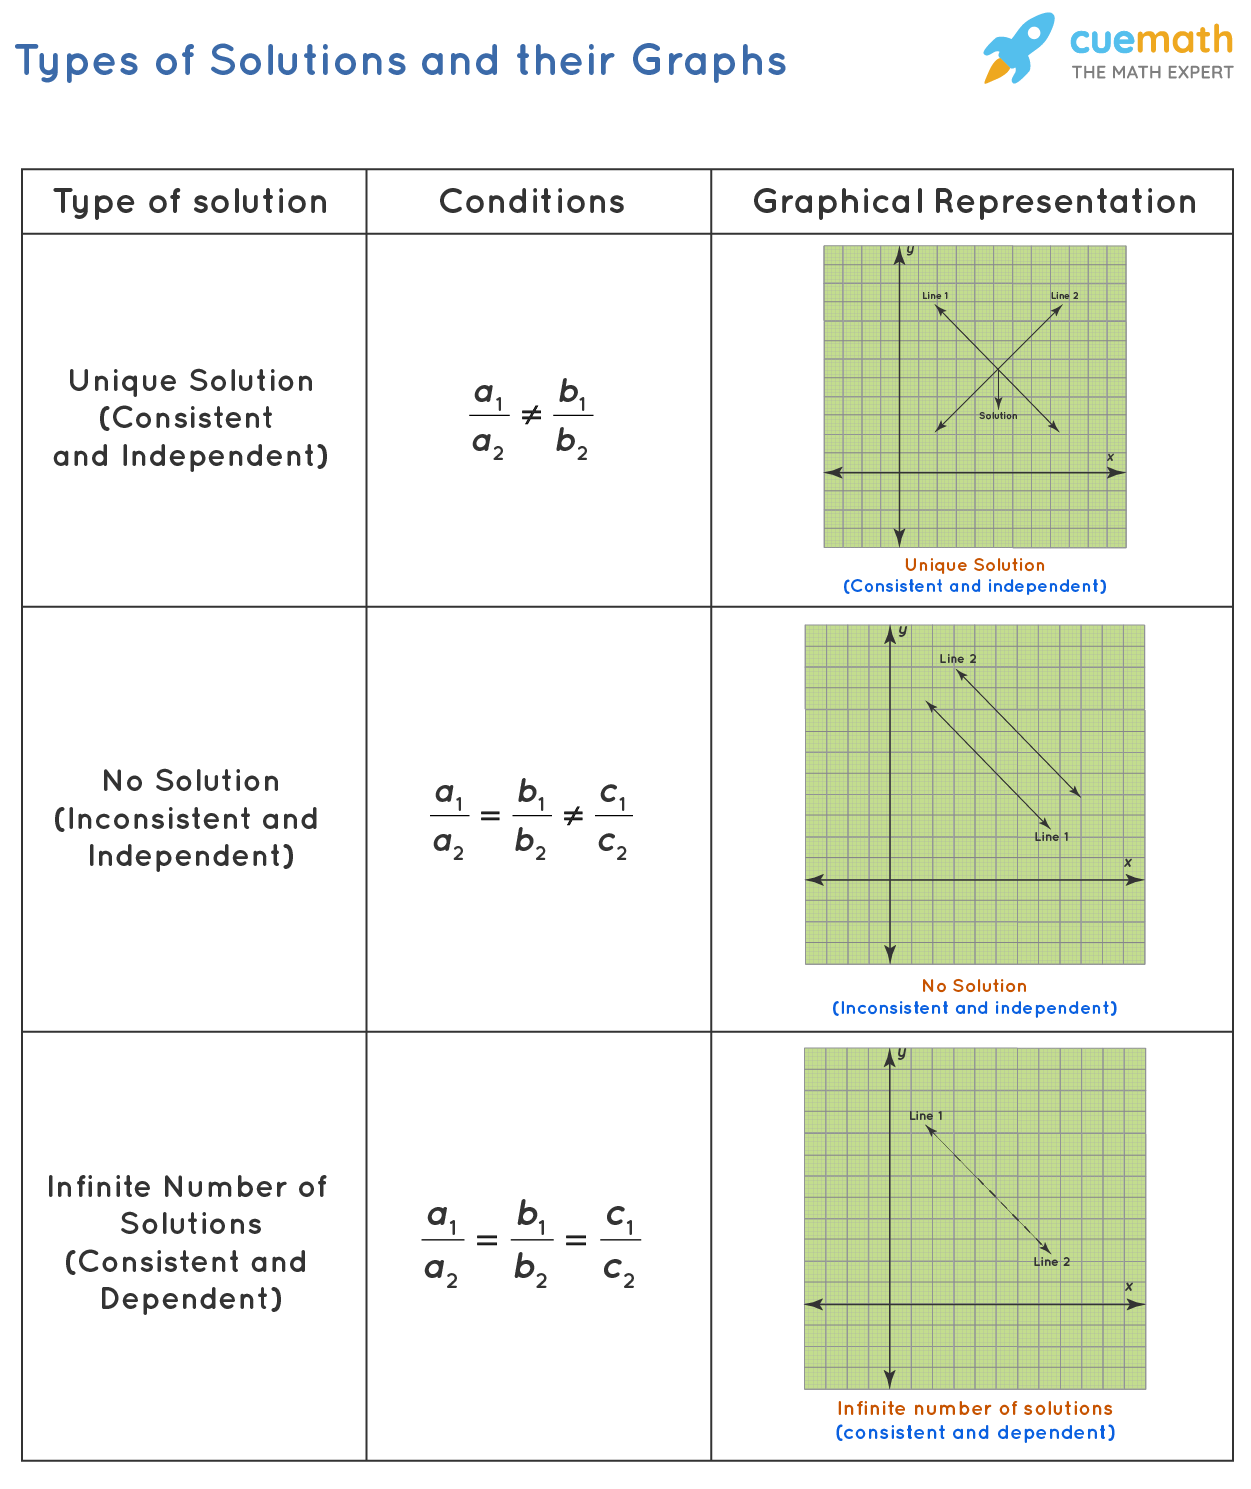 Types of Solutions and their Graphs